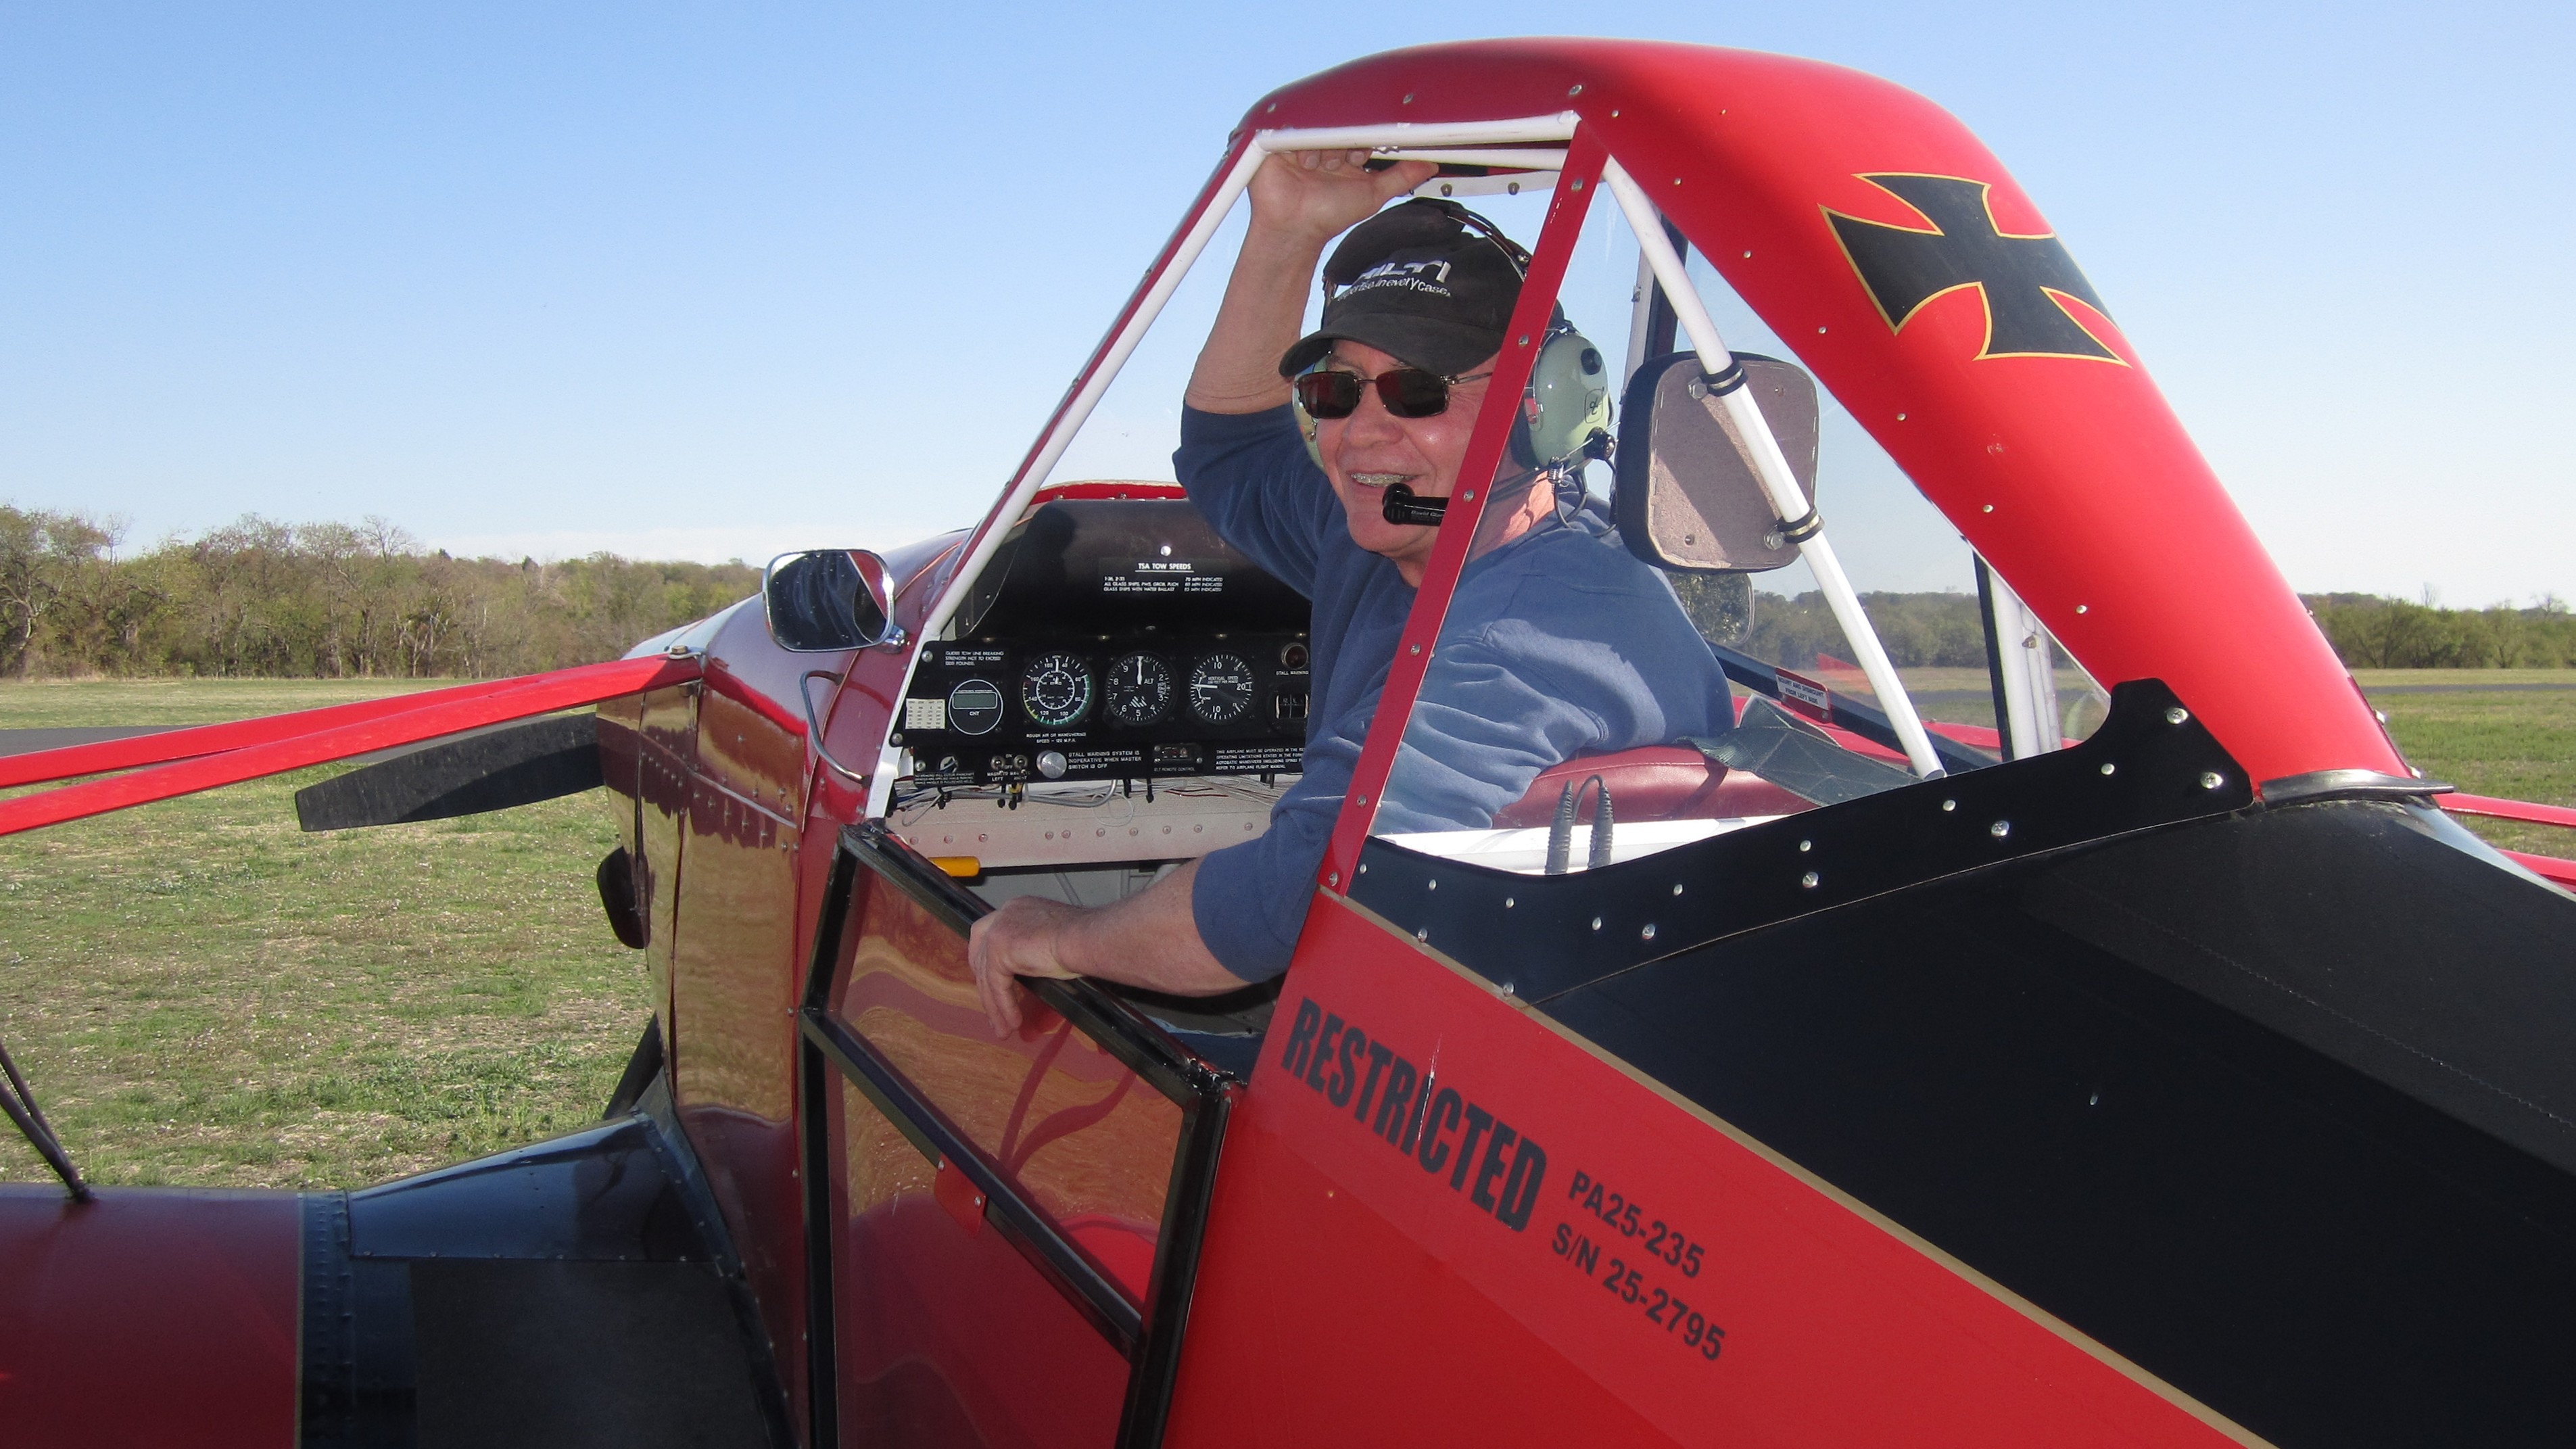 Tow pilot at Texas Soaring Association